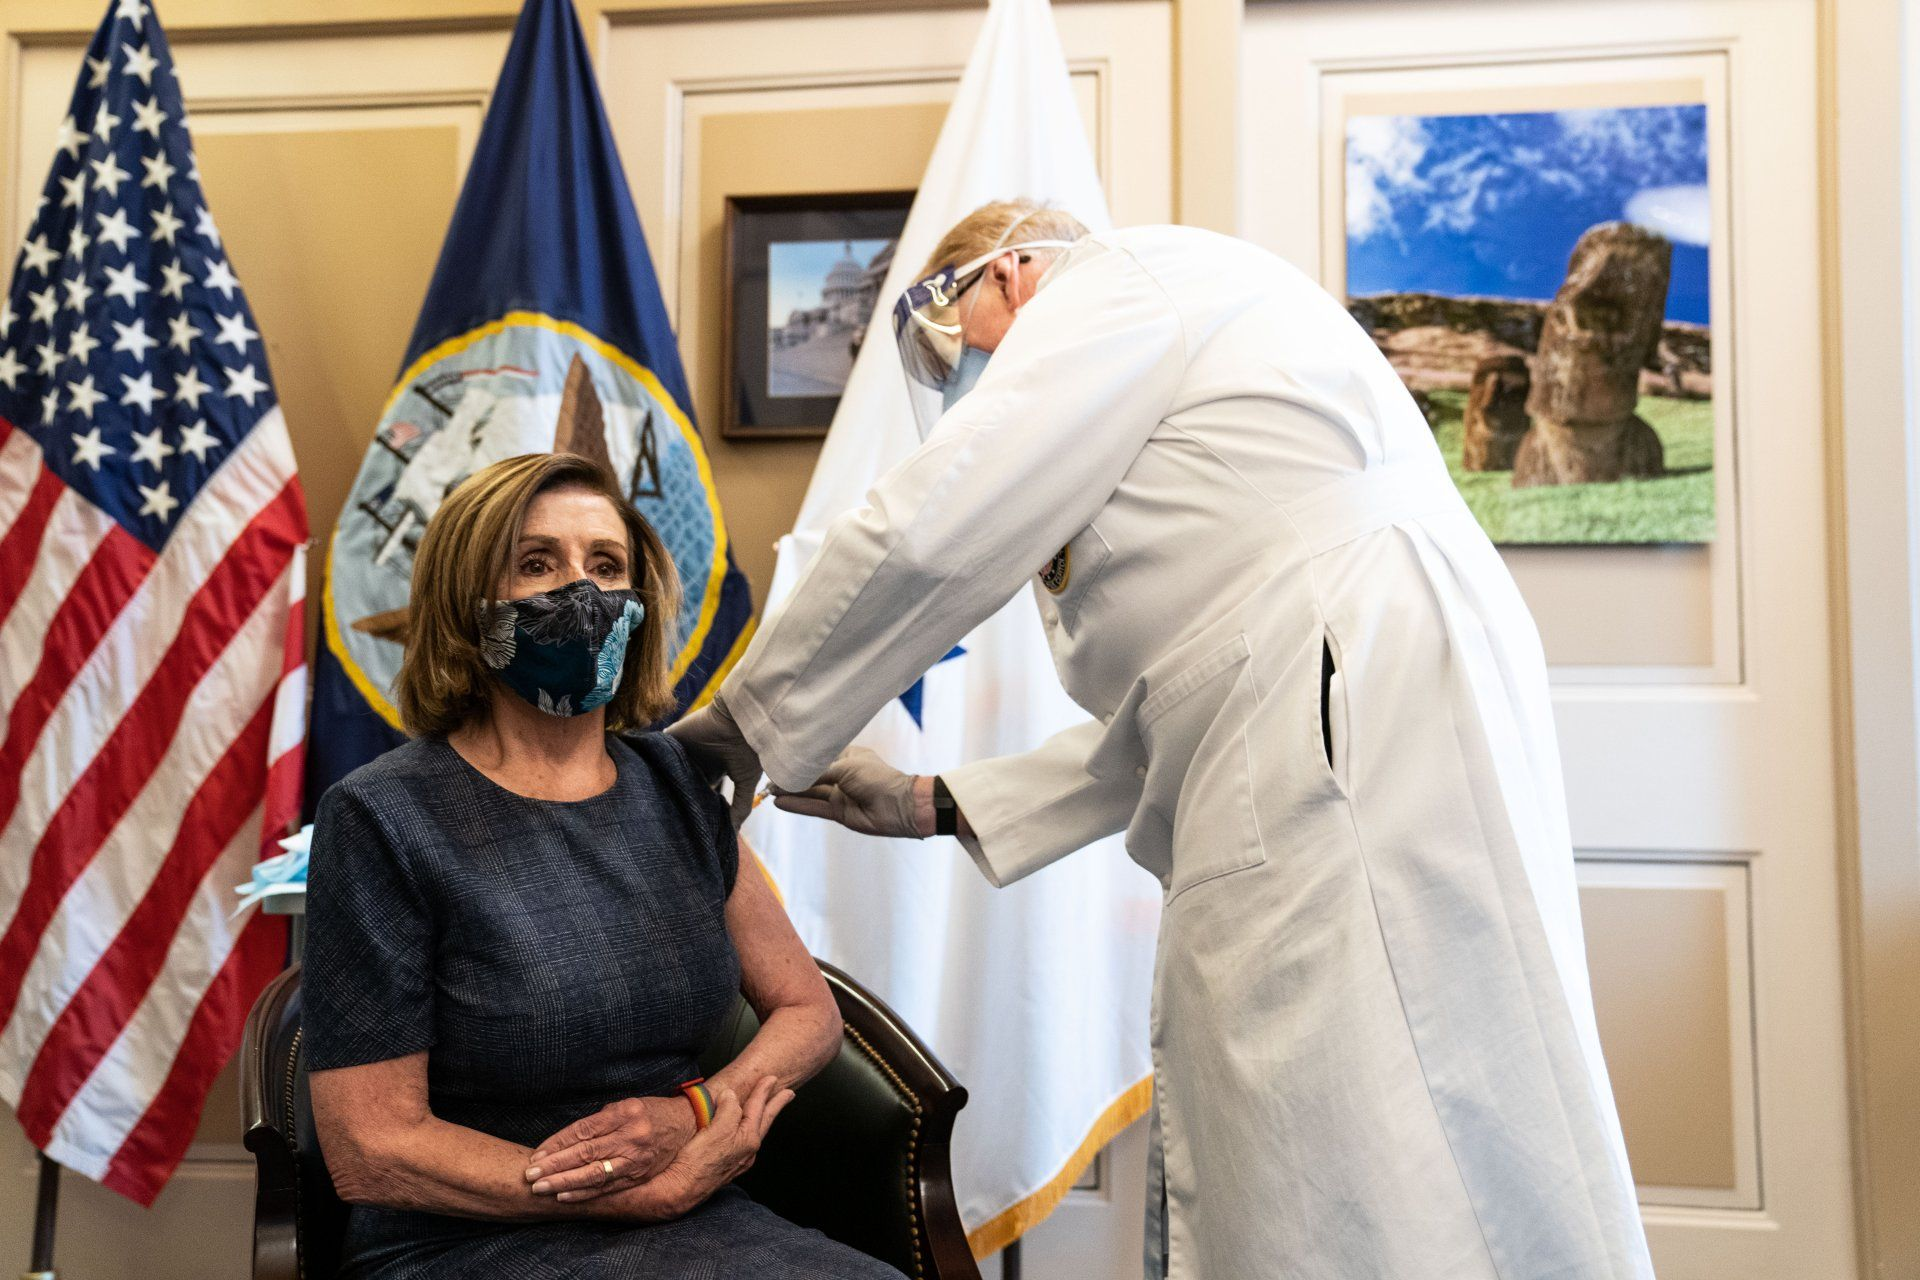 Mandatory Credit: Photo by Shutterstock (11596506p)Speaker of the United States House of Representatives Nancy Pelosi (Democrat of California), receives the Pfizer-Biontech COVID-19 vaccine in the US Capitol Building in Washington DC on December 18th, 2020.